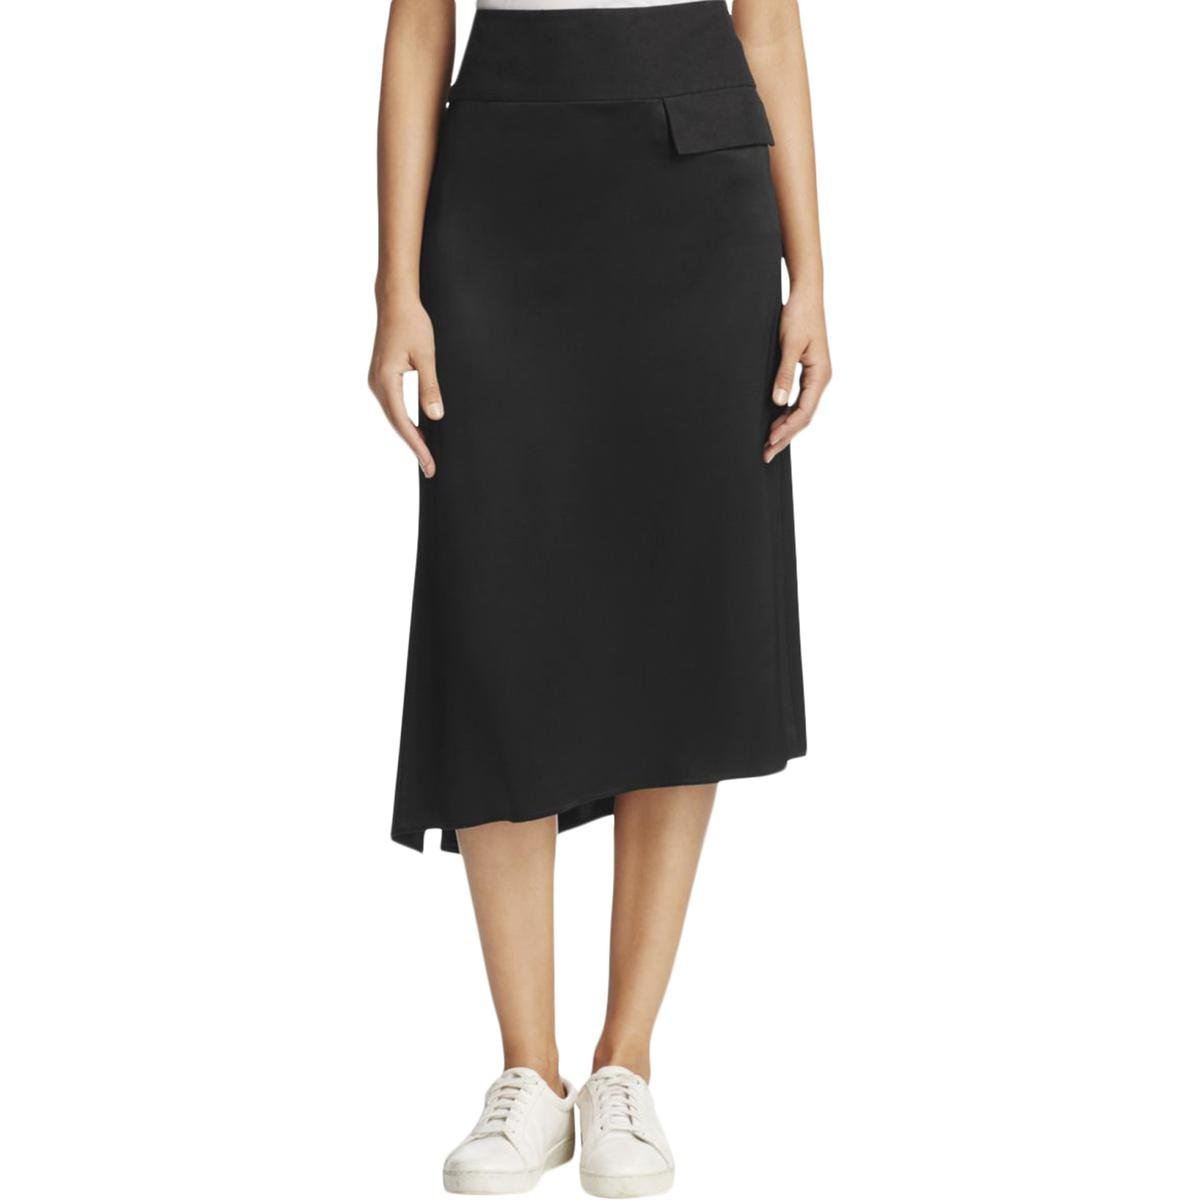 DKNY Womens Asymmetrical Satin A-Line Skirt Black 4